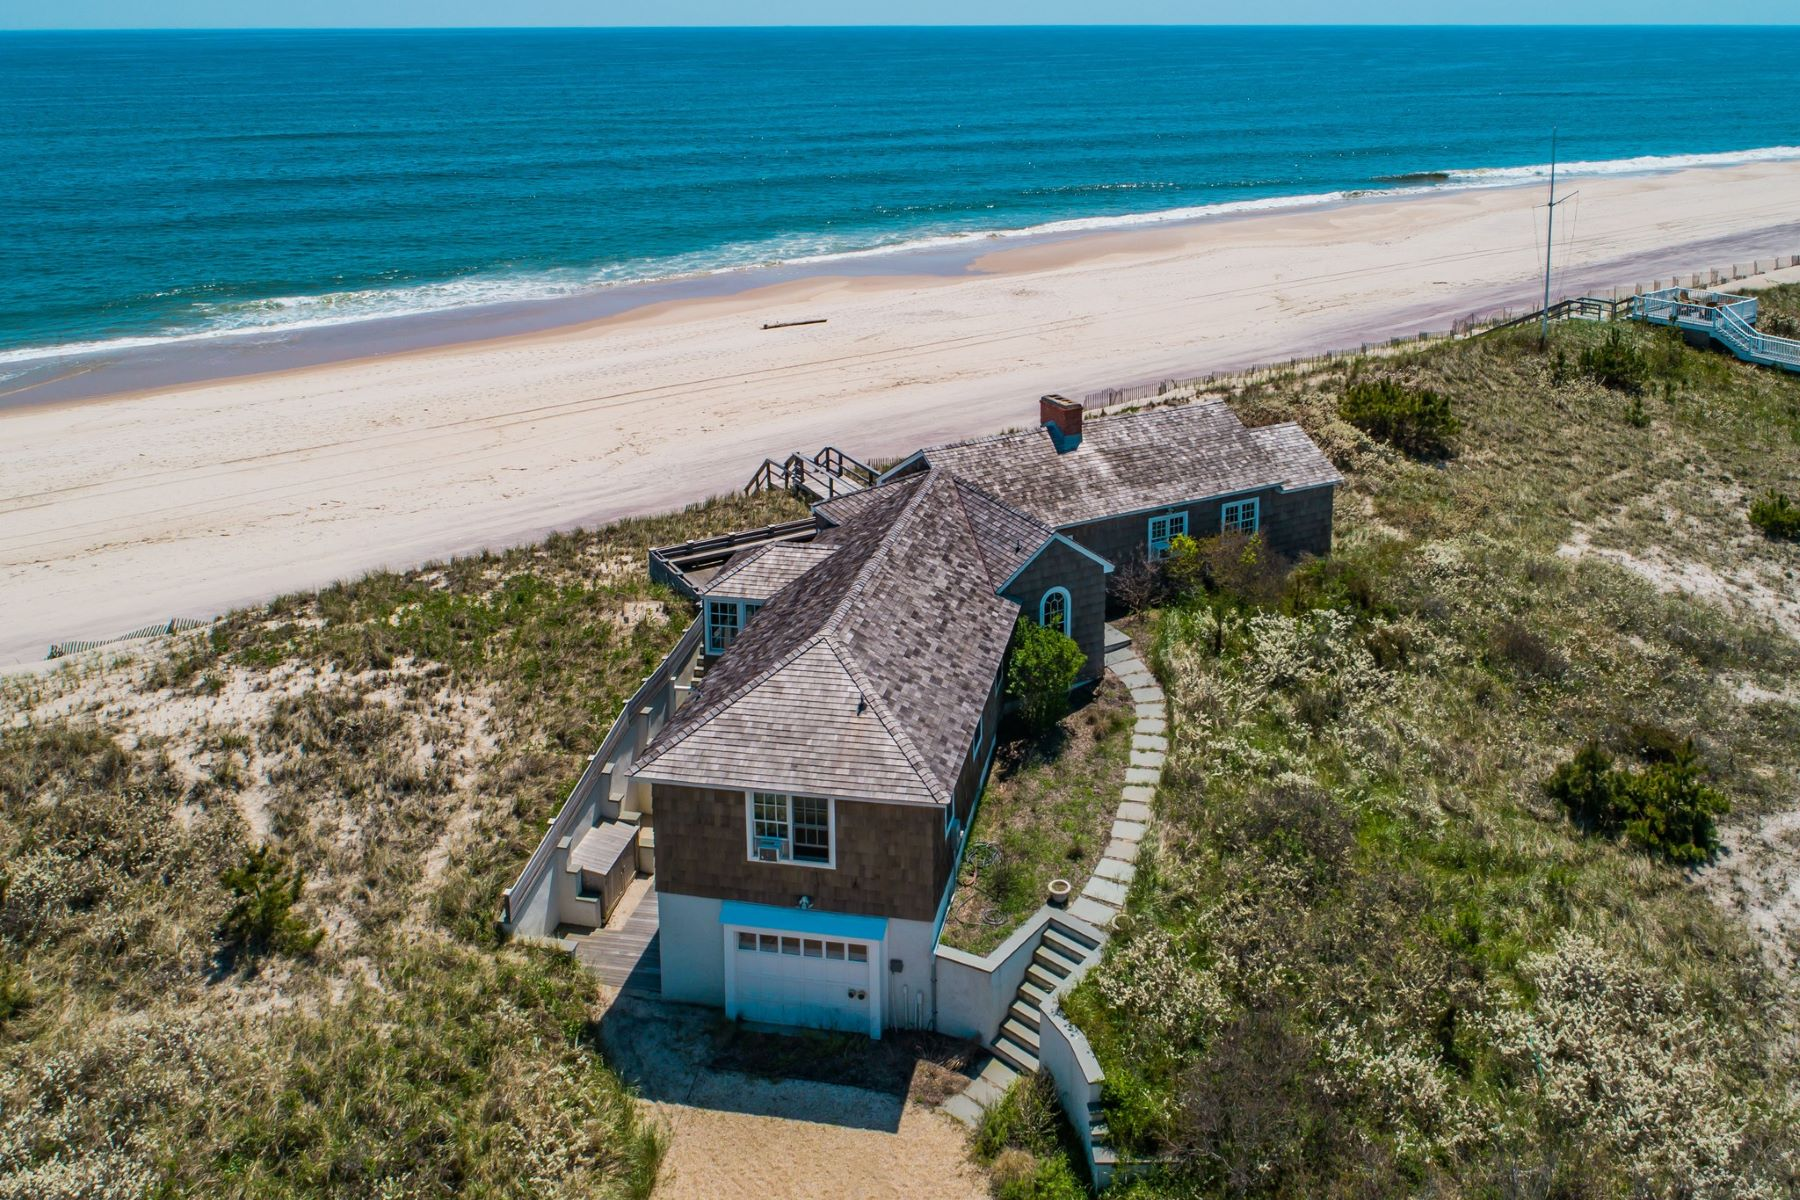 Single Family Homes for Sale at Quogue 154 Dune Rd Quogue, New York 11959 United States